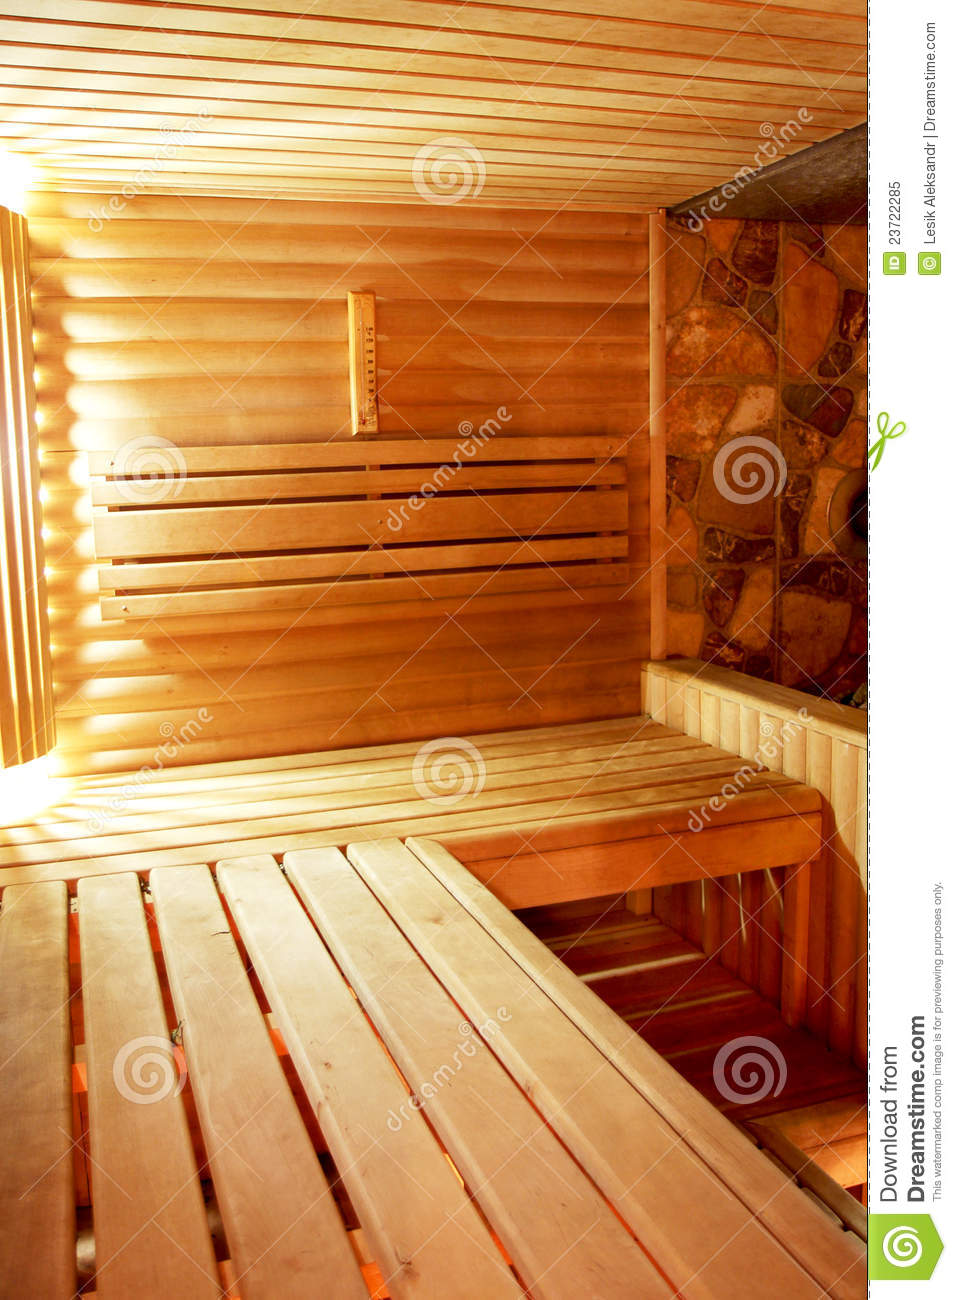 l 39 int rieur du sauna dans un r tro type photo libre de droits image 23722285. Black Bedroom Furniture Sets. Home Design Ideas